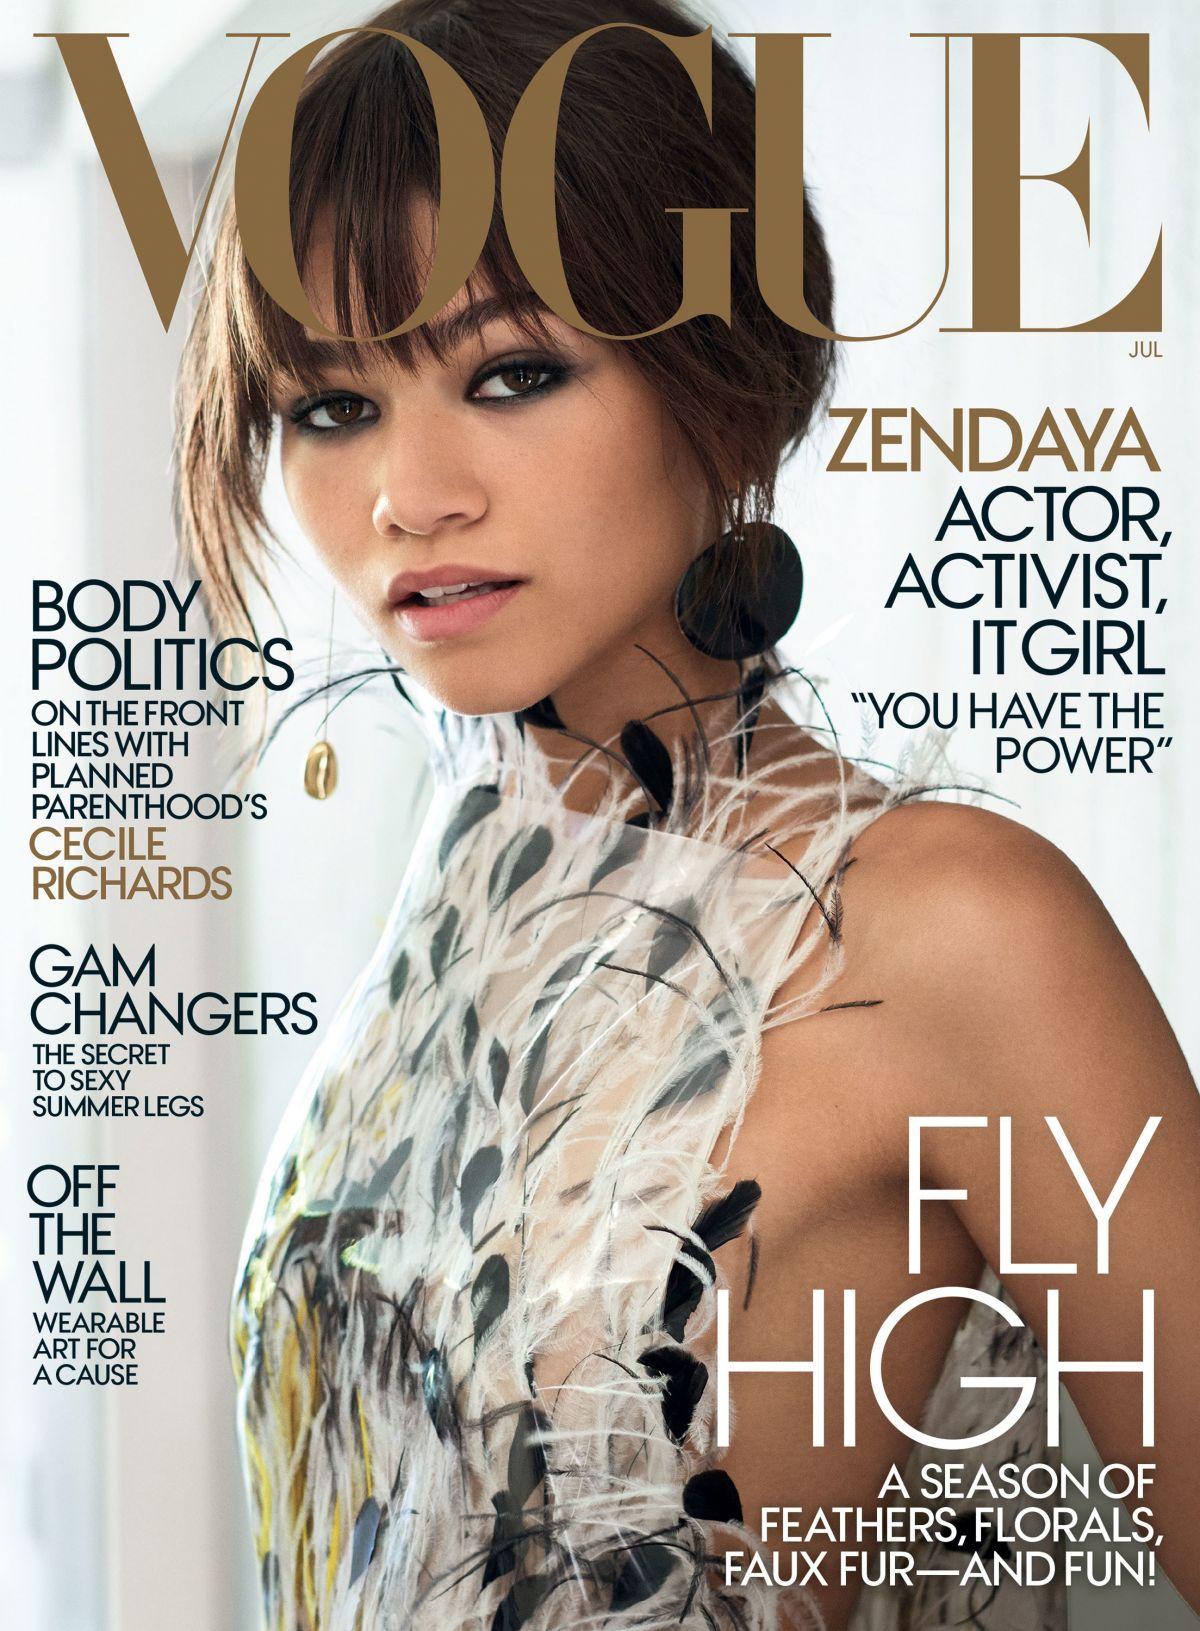 ZENDAYA for Vogue Magazine, July 2017